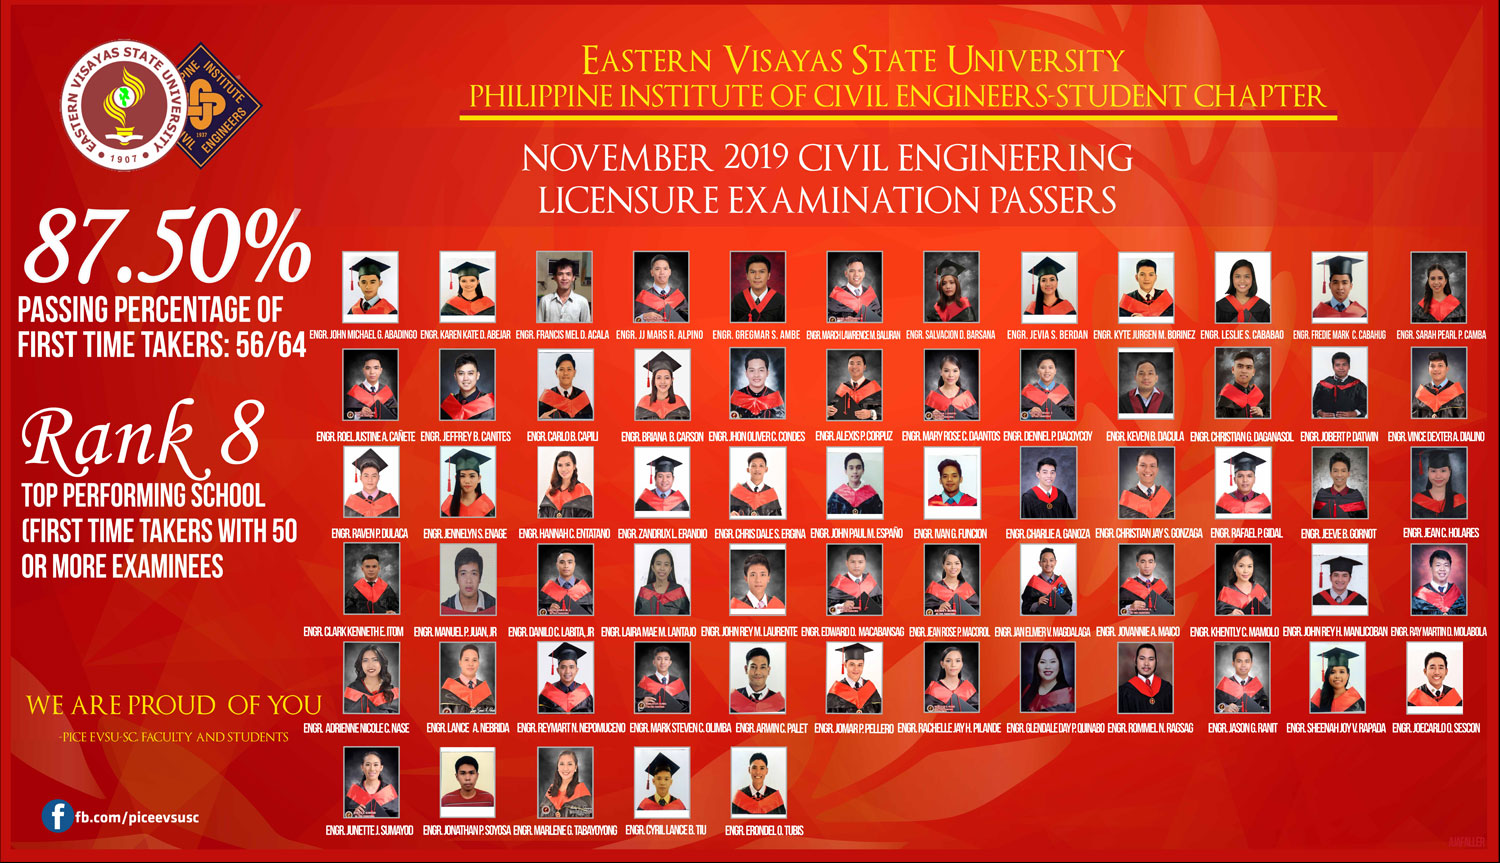 Congratulations to our new Civil Engineers